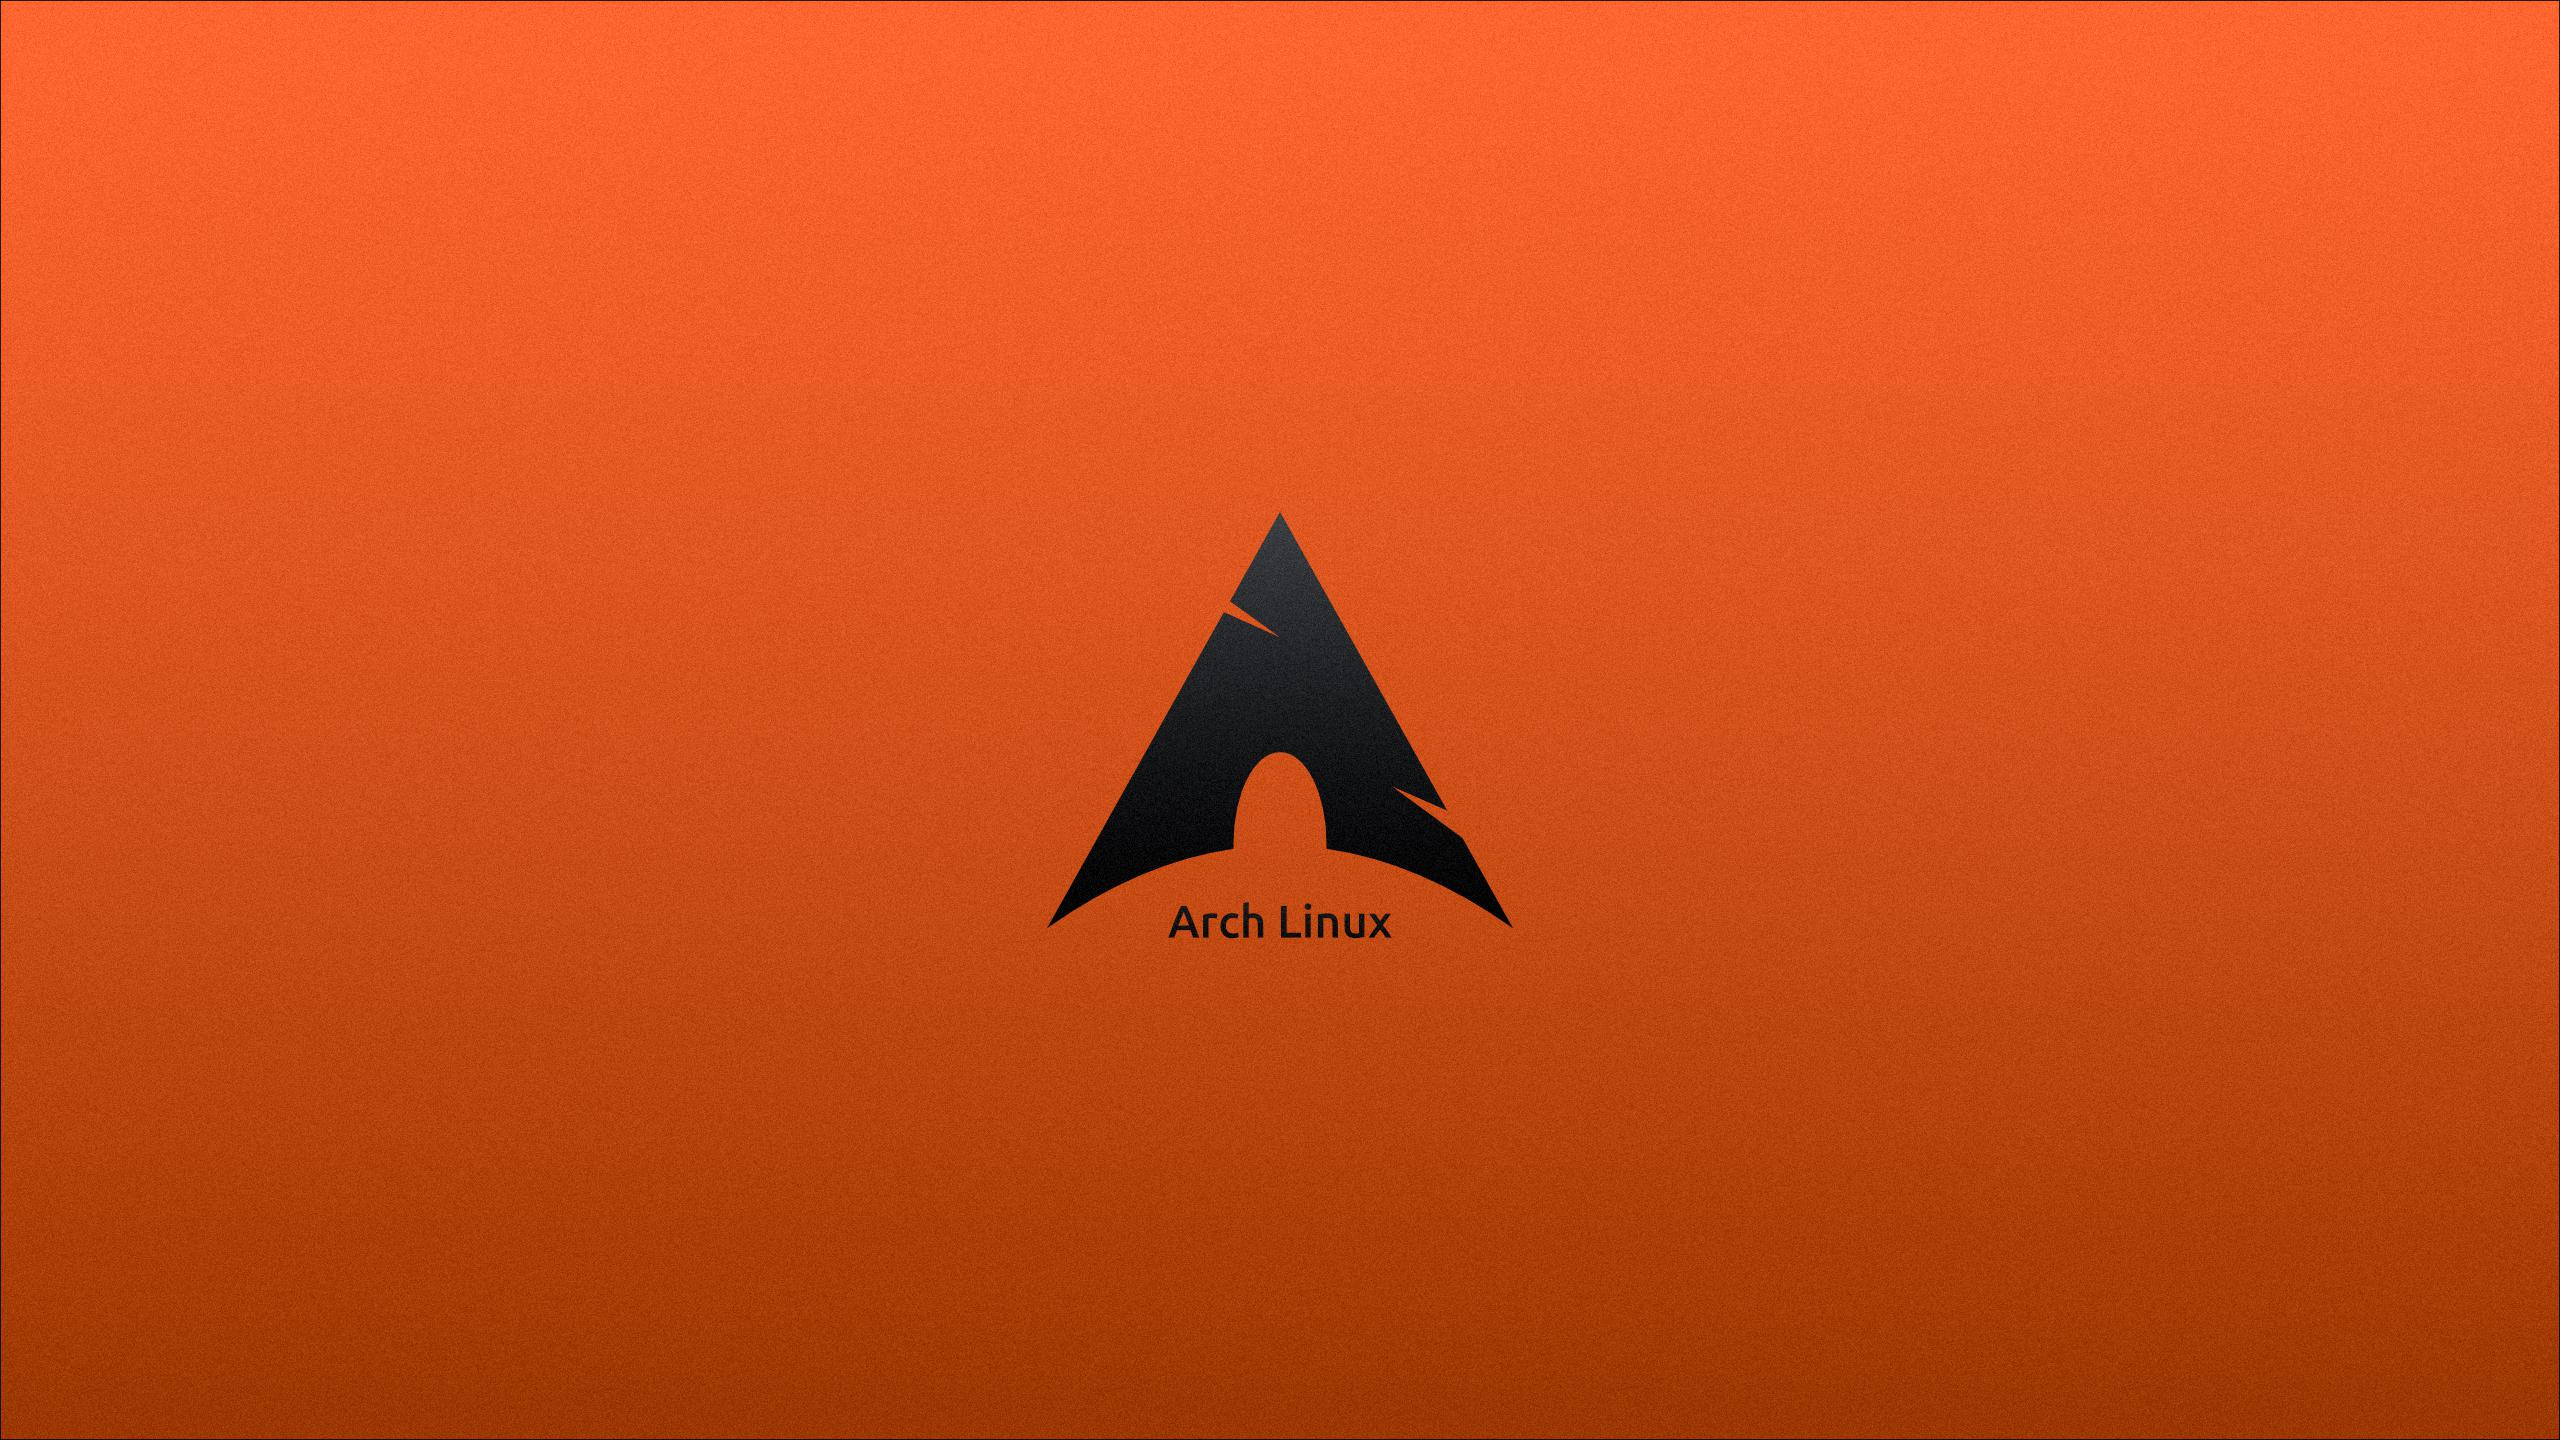 Linux 4k Wallpapers For Your Desktop Or Mobile Screen Free And Easy To Download